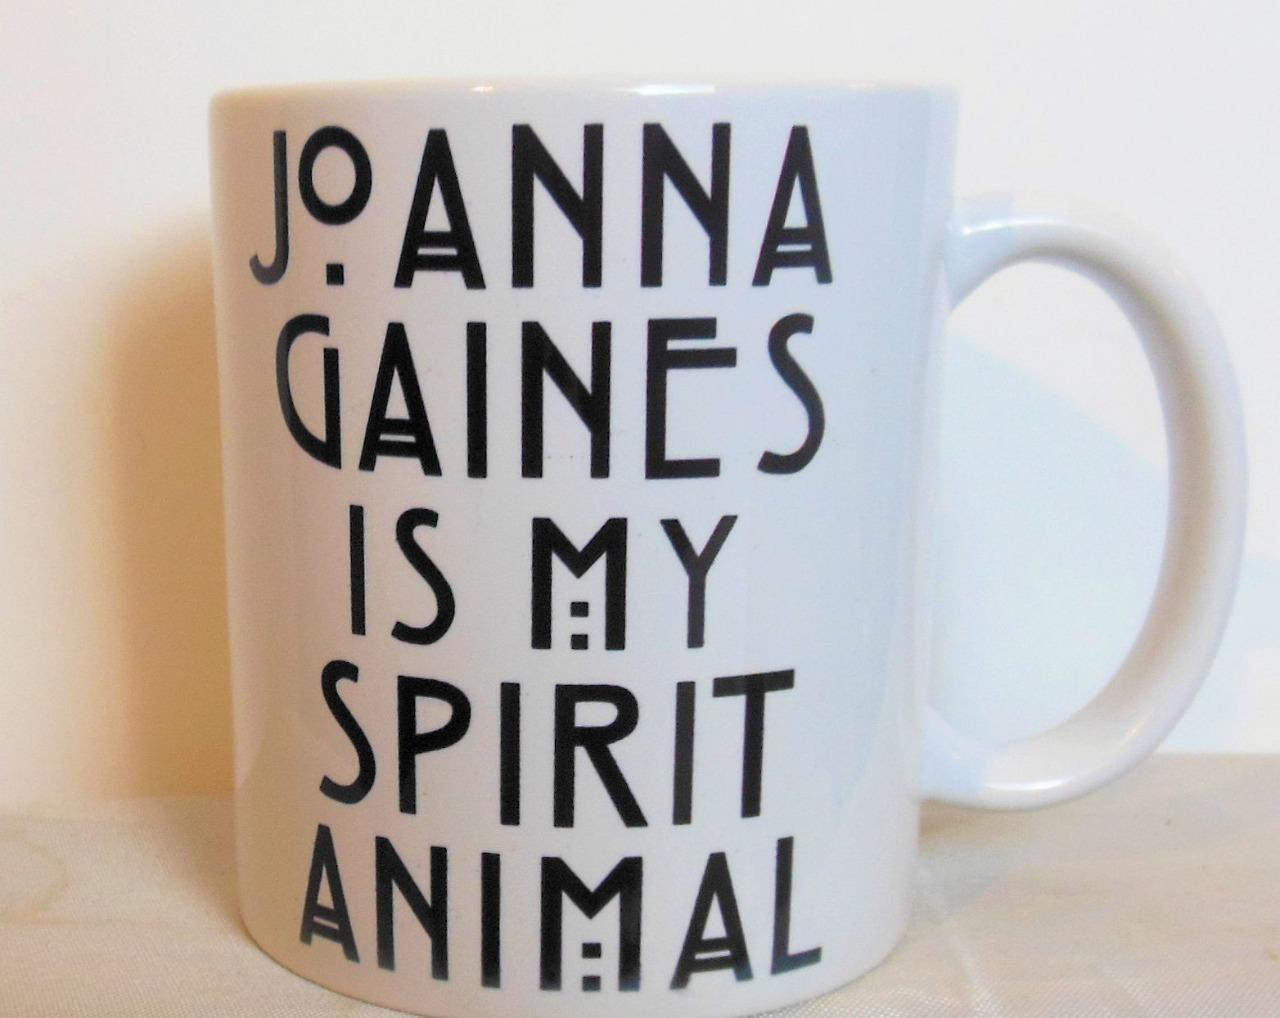 Joanna Gaines is My Spirit Animal Mug Black and White 3.75""